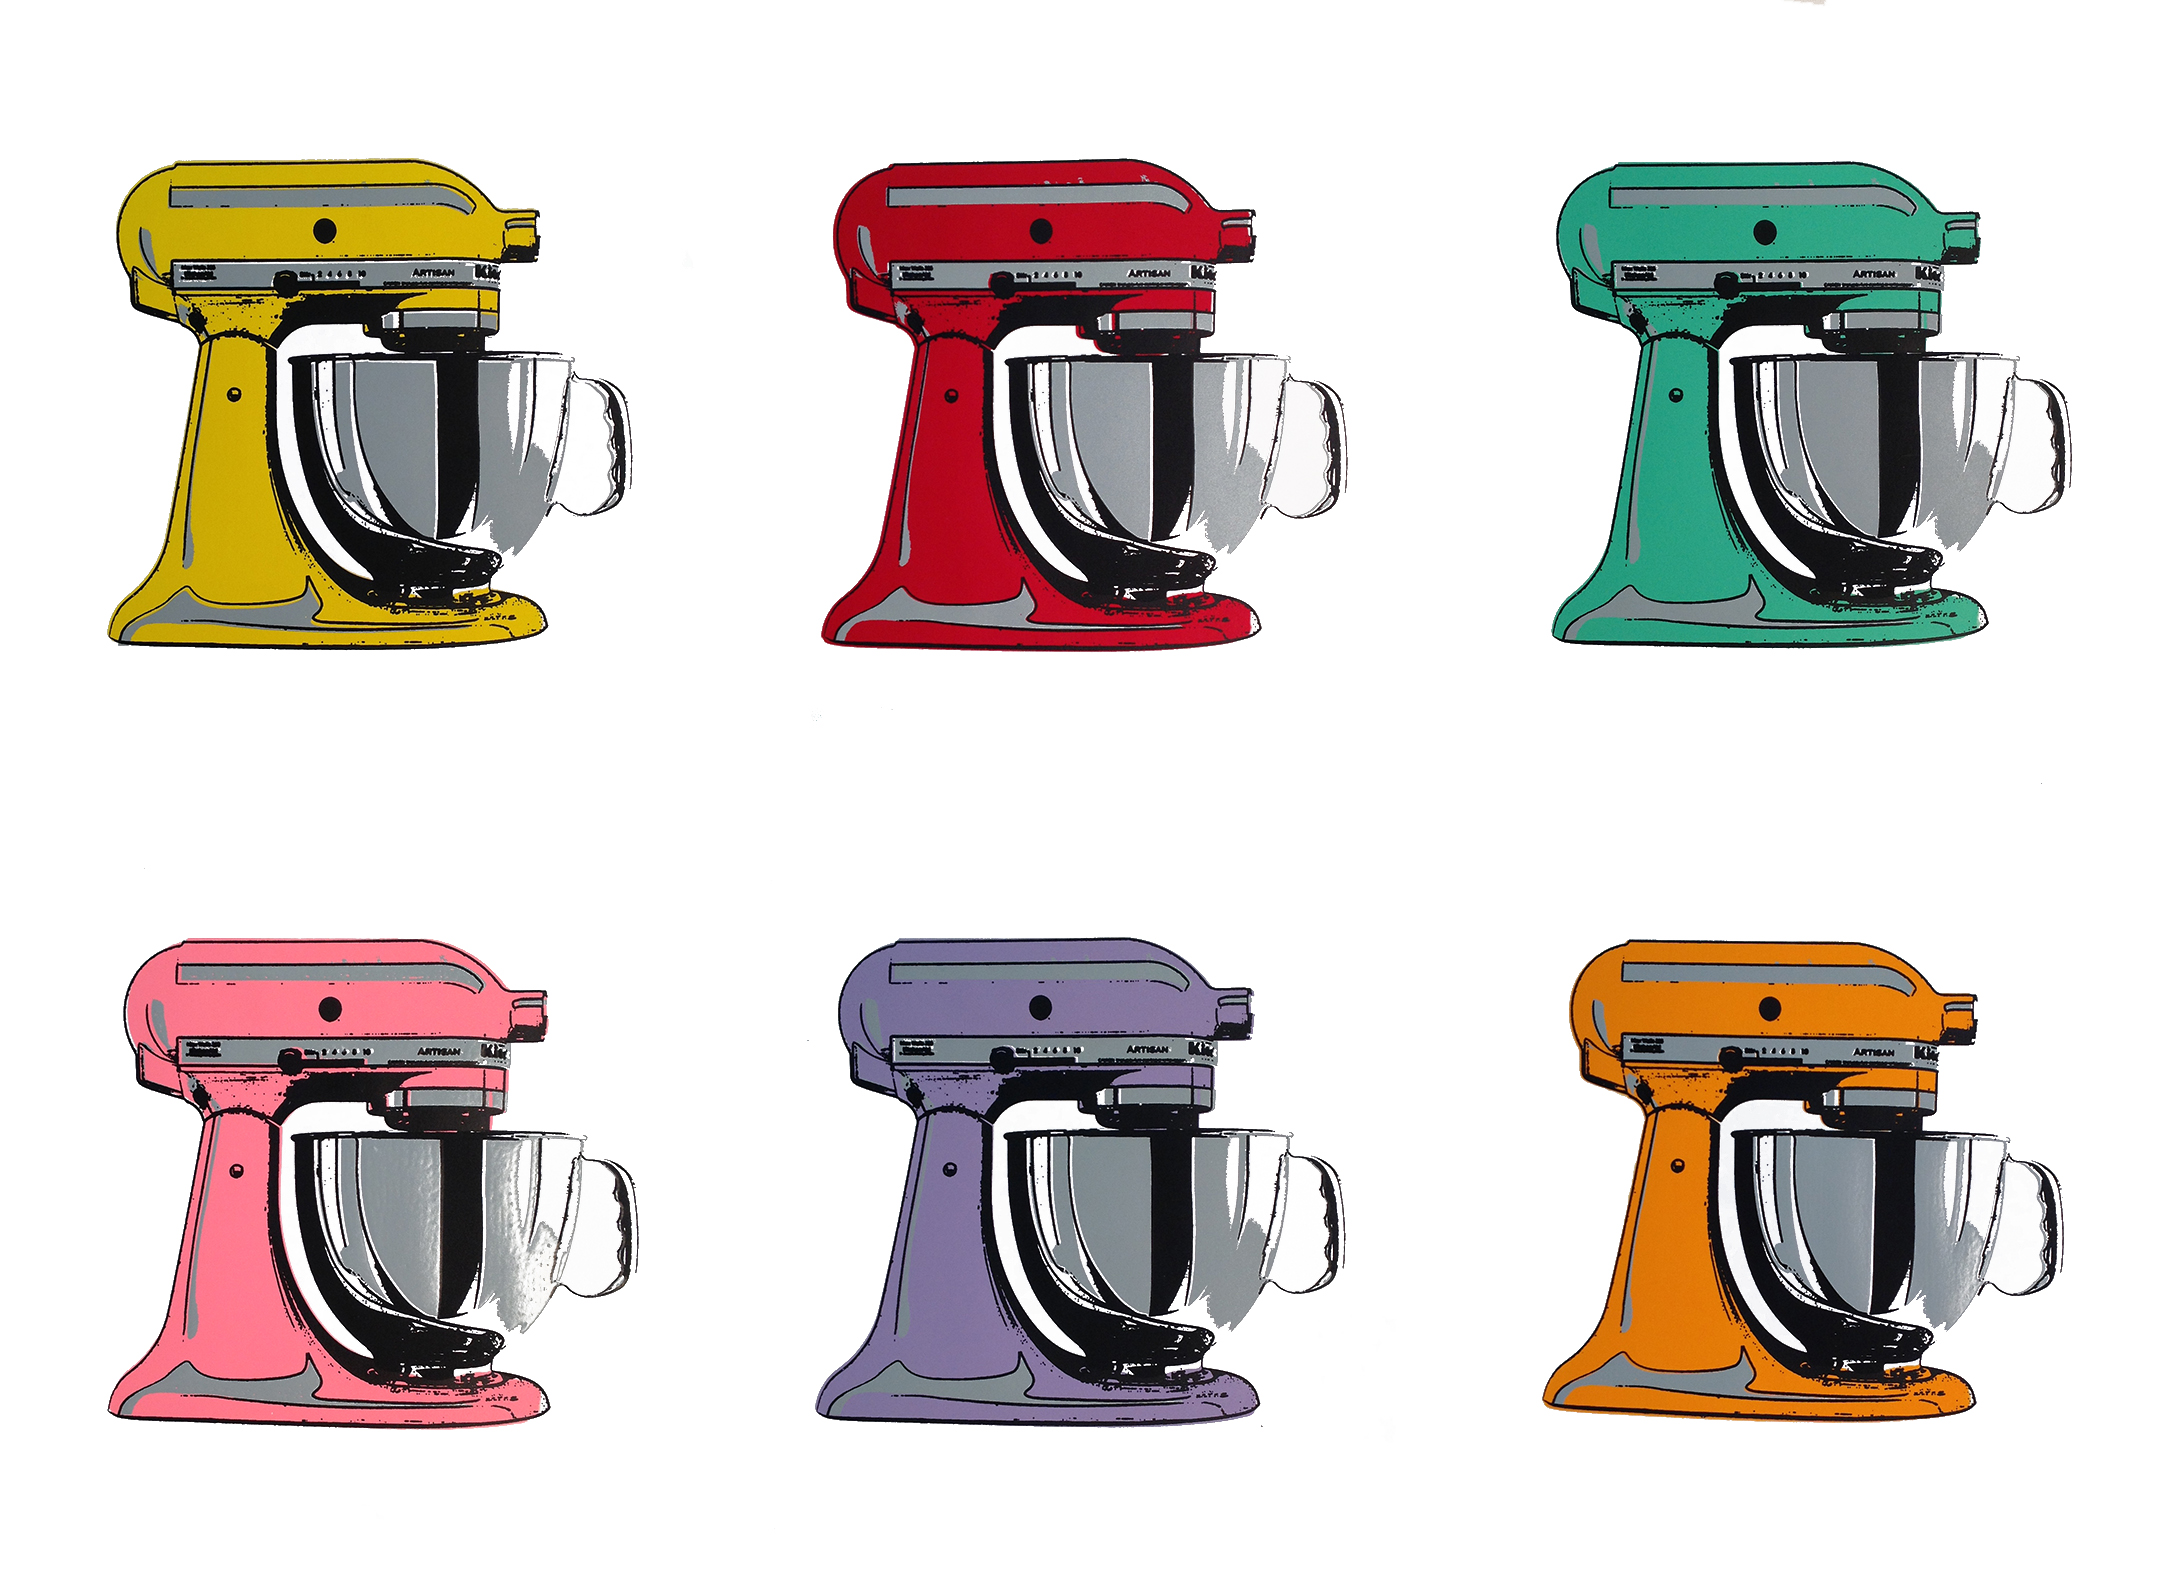 Kitchen Aid Mixers, Set of Six. Limited Edition (Batedeiras KitchenAid, Conjunto de Seis, Edição Limitada